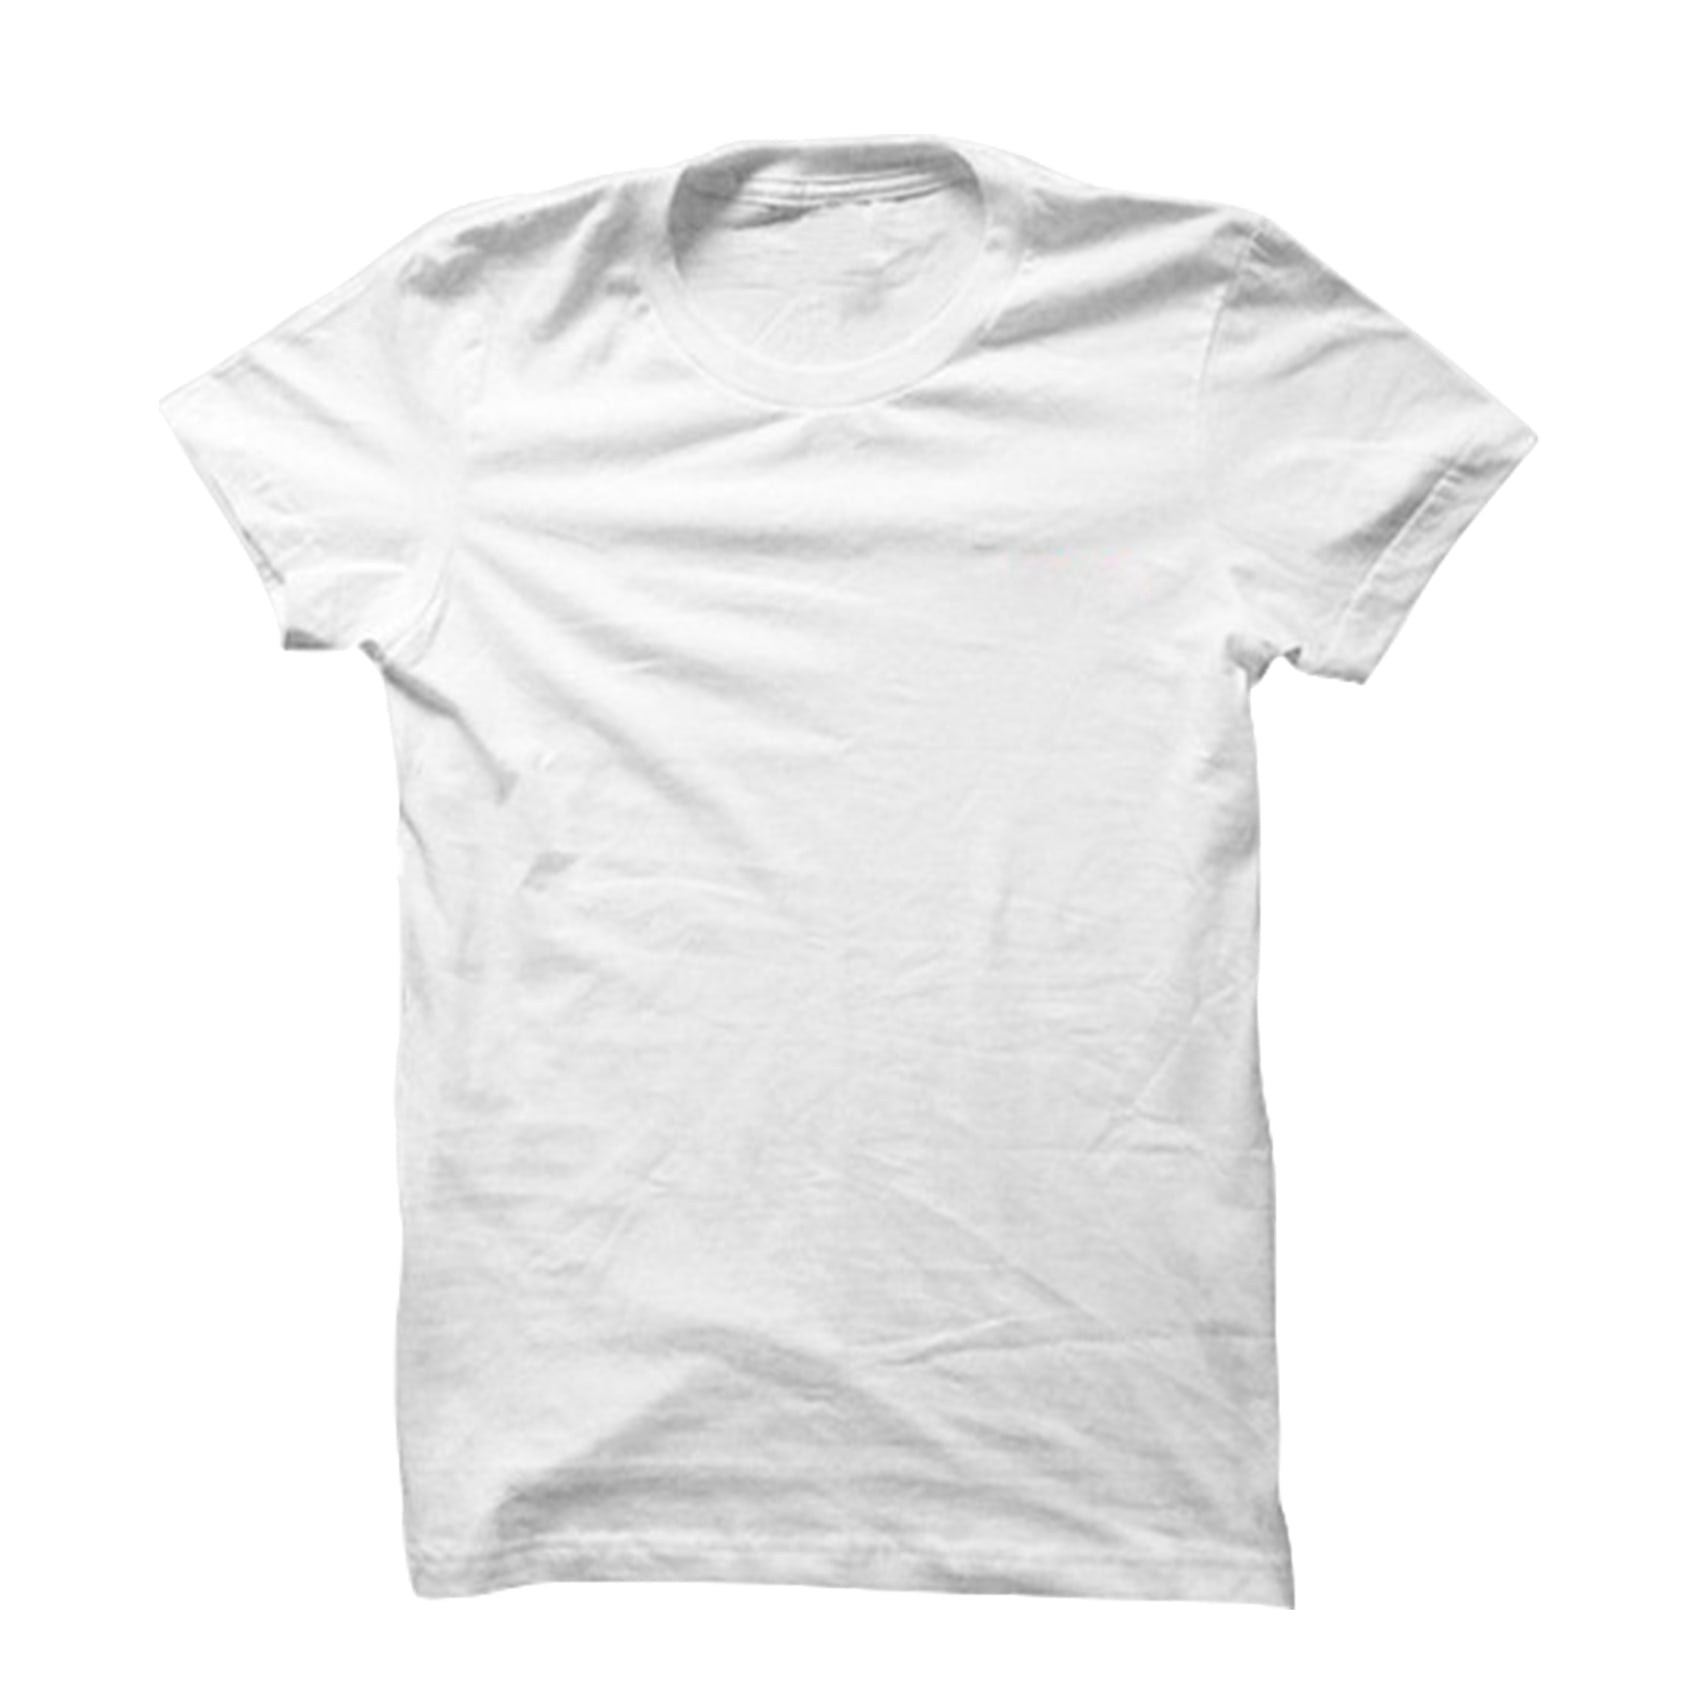 567e2e892c6 Perfect T-Shirts for men. Get up to 30% discount on your favourite ...